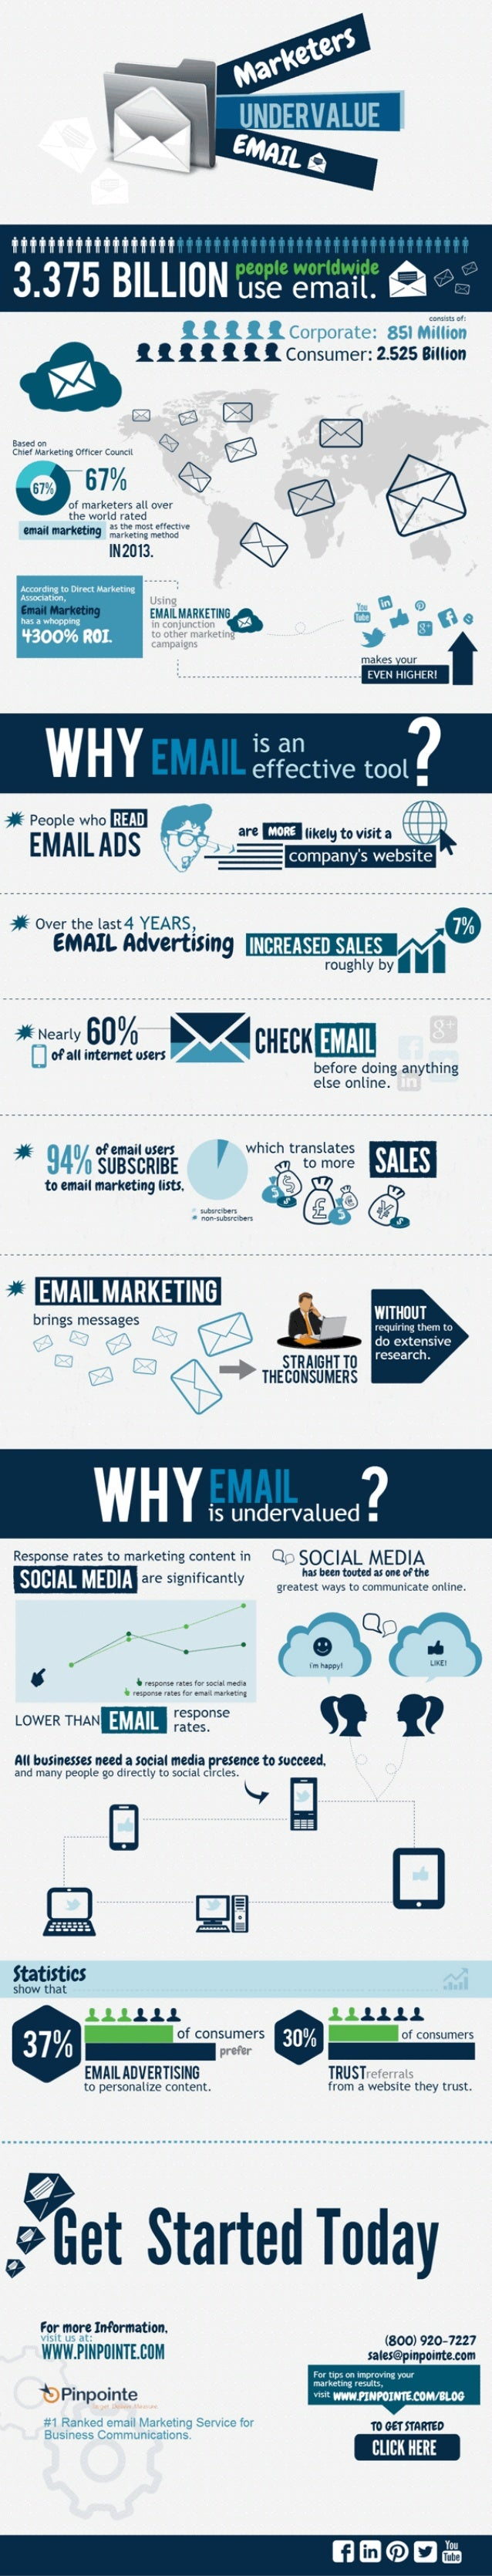 Infographic: Marketers Undervalue Email